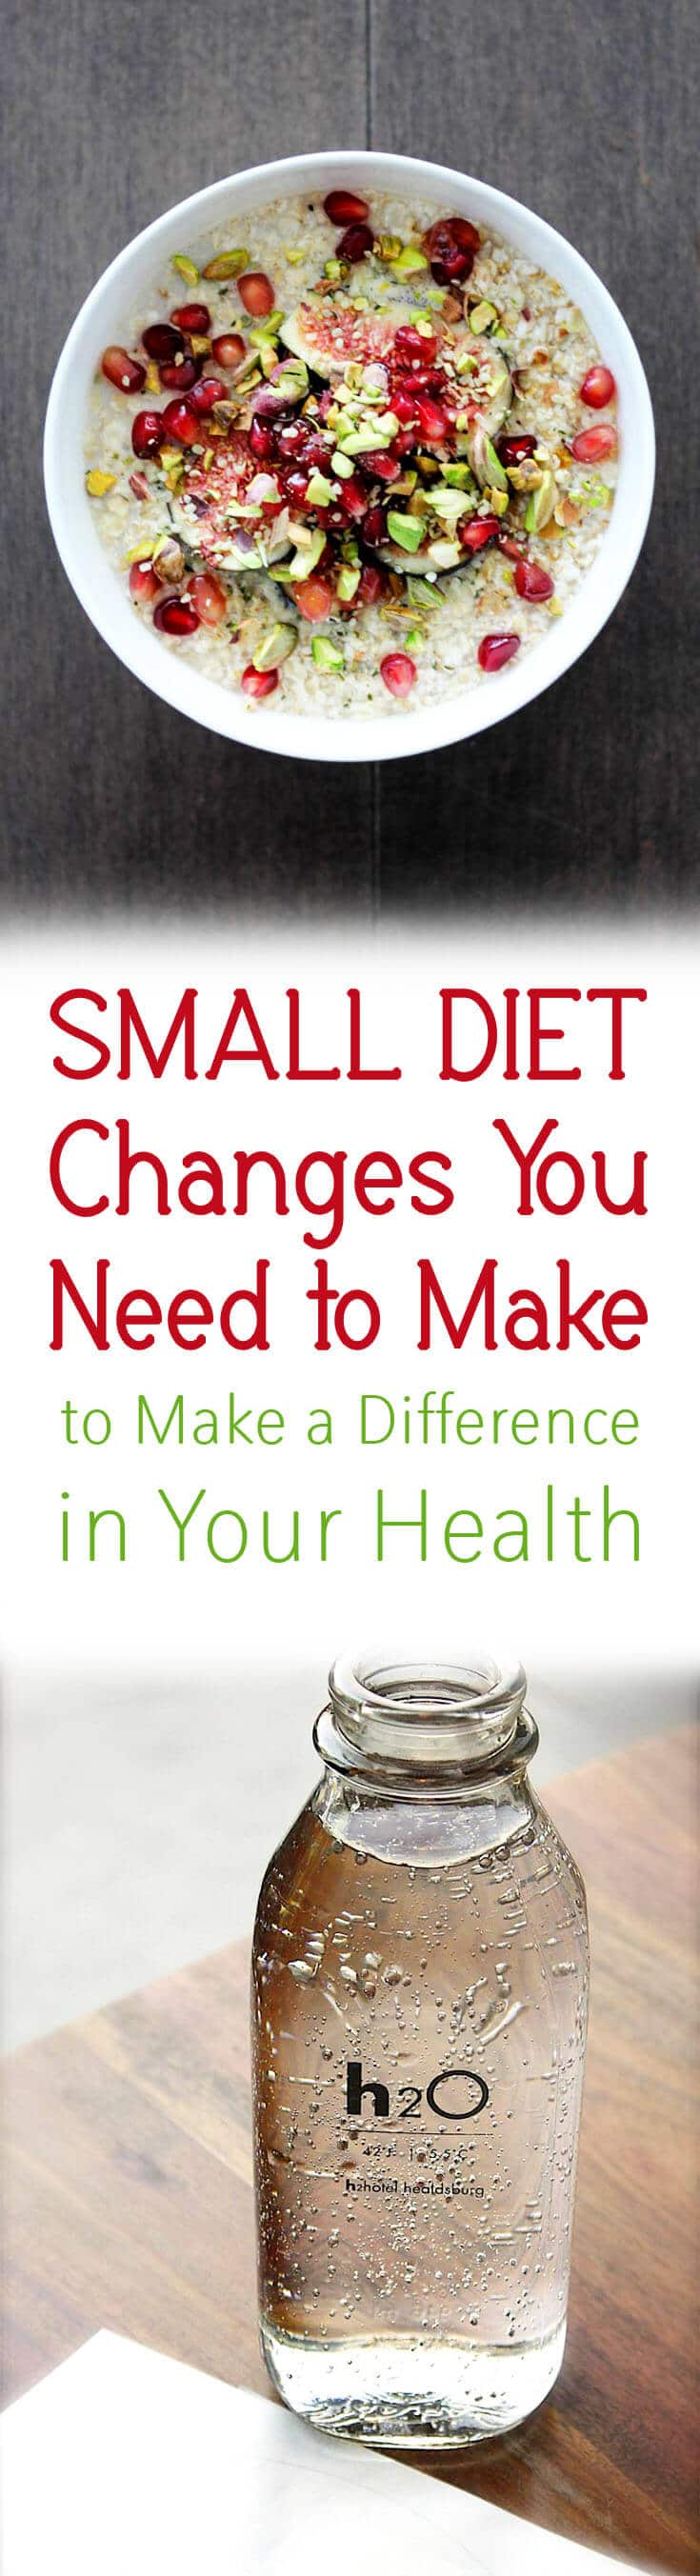 I share my top 10 Small Diet Changes You NEED to Make BIG Difference to Your Health for Nutrition Month!